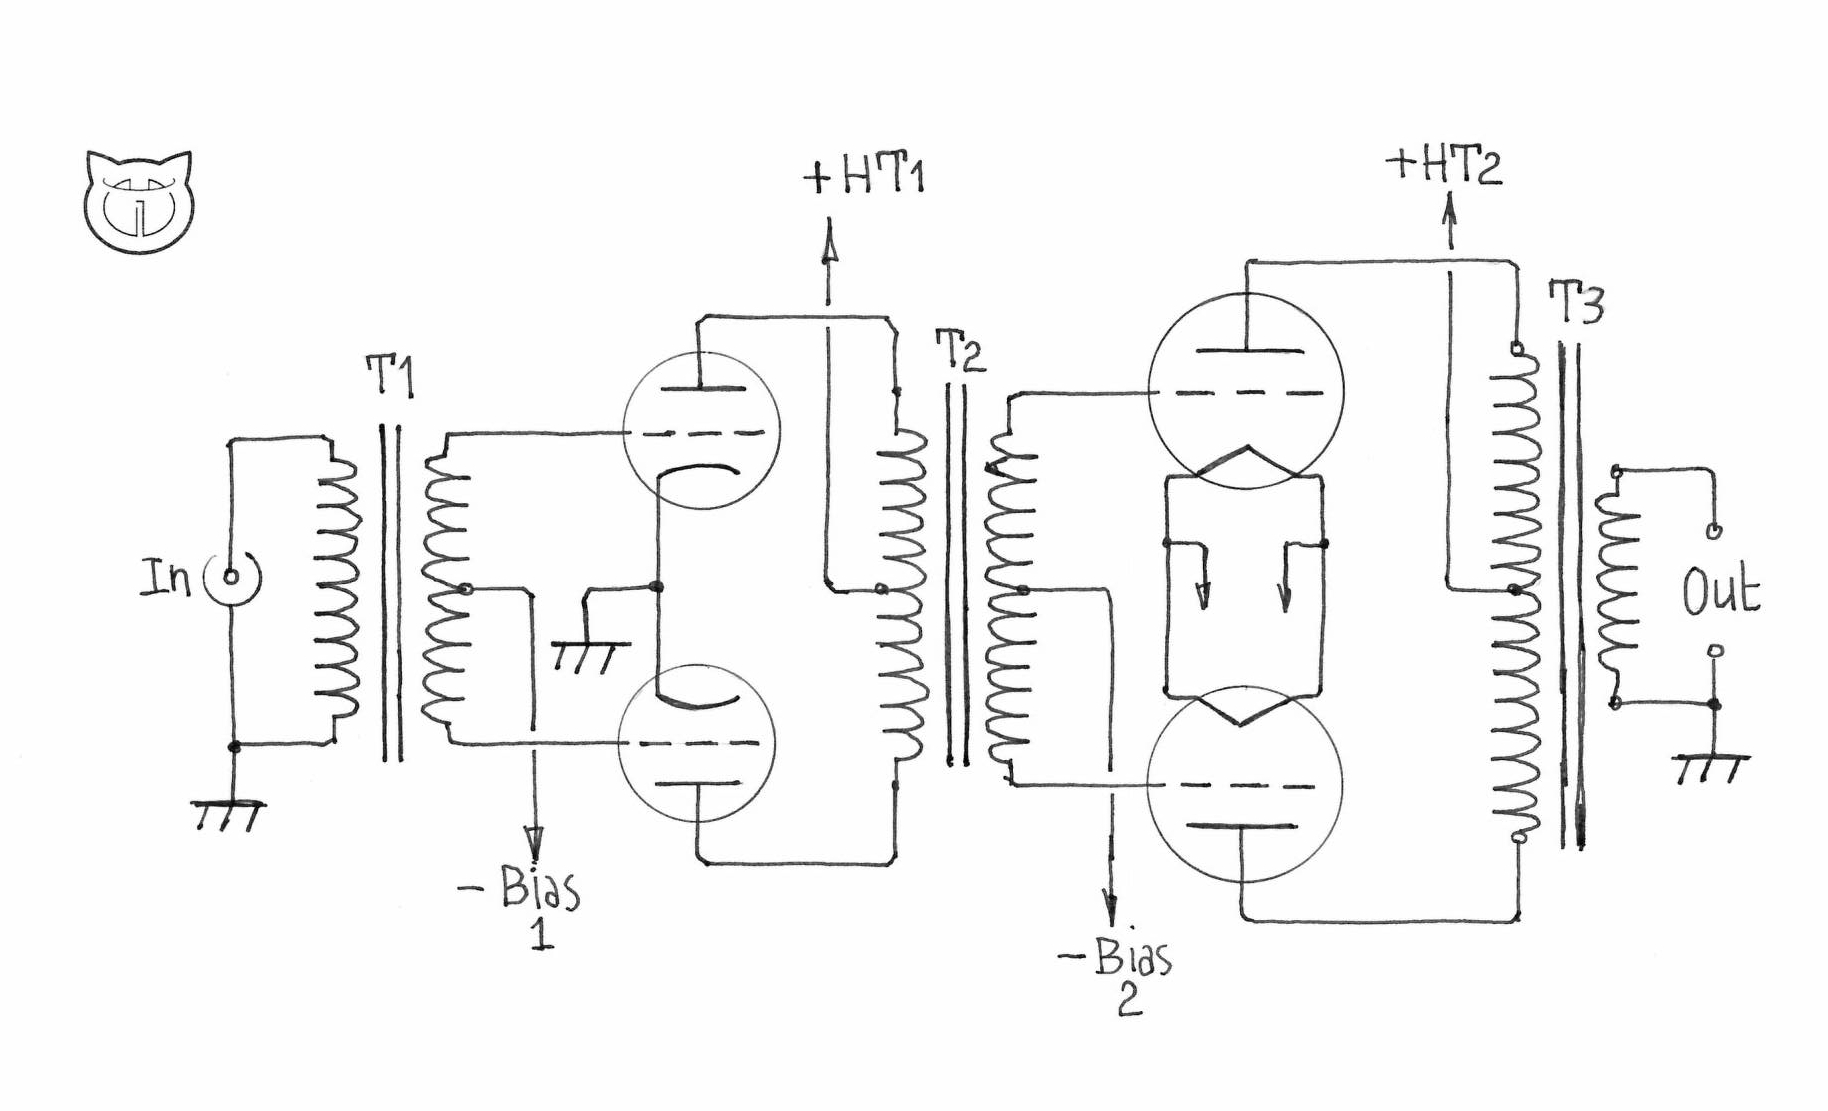 hight resolution of circuit transfromer phase splitting schematic diagramcircuit transfromer phase splitting manual e books vacuum tube circuit